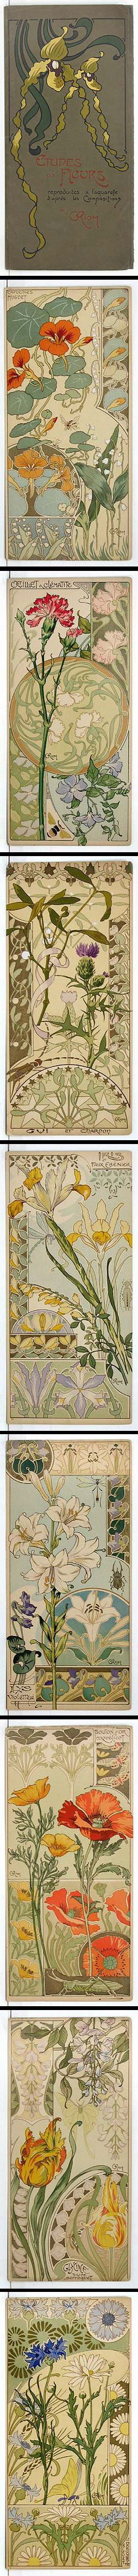 """""""Etudes de Fleurs"""" - Riom; 1890s. Extremely rare and beautiful French Art Nouveau set of 8 floral color lithographs by Riom, in their original pictorial cover folder. Each print features several types of flowers, and also each shows a single insect. Incredible example of floral Art Nouveau."""